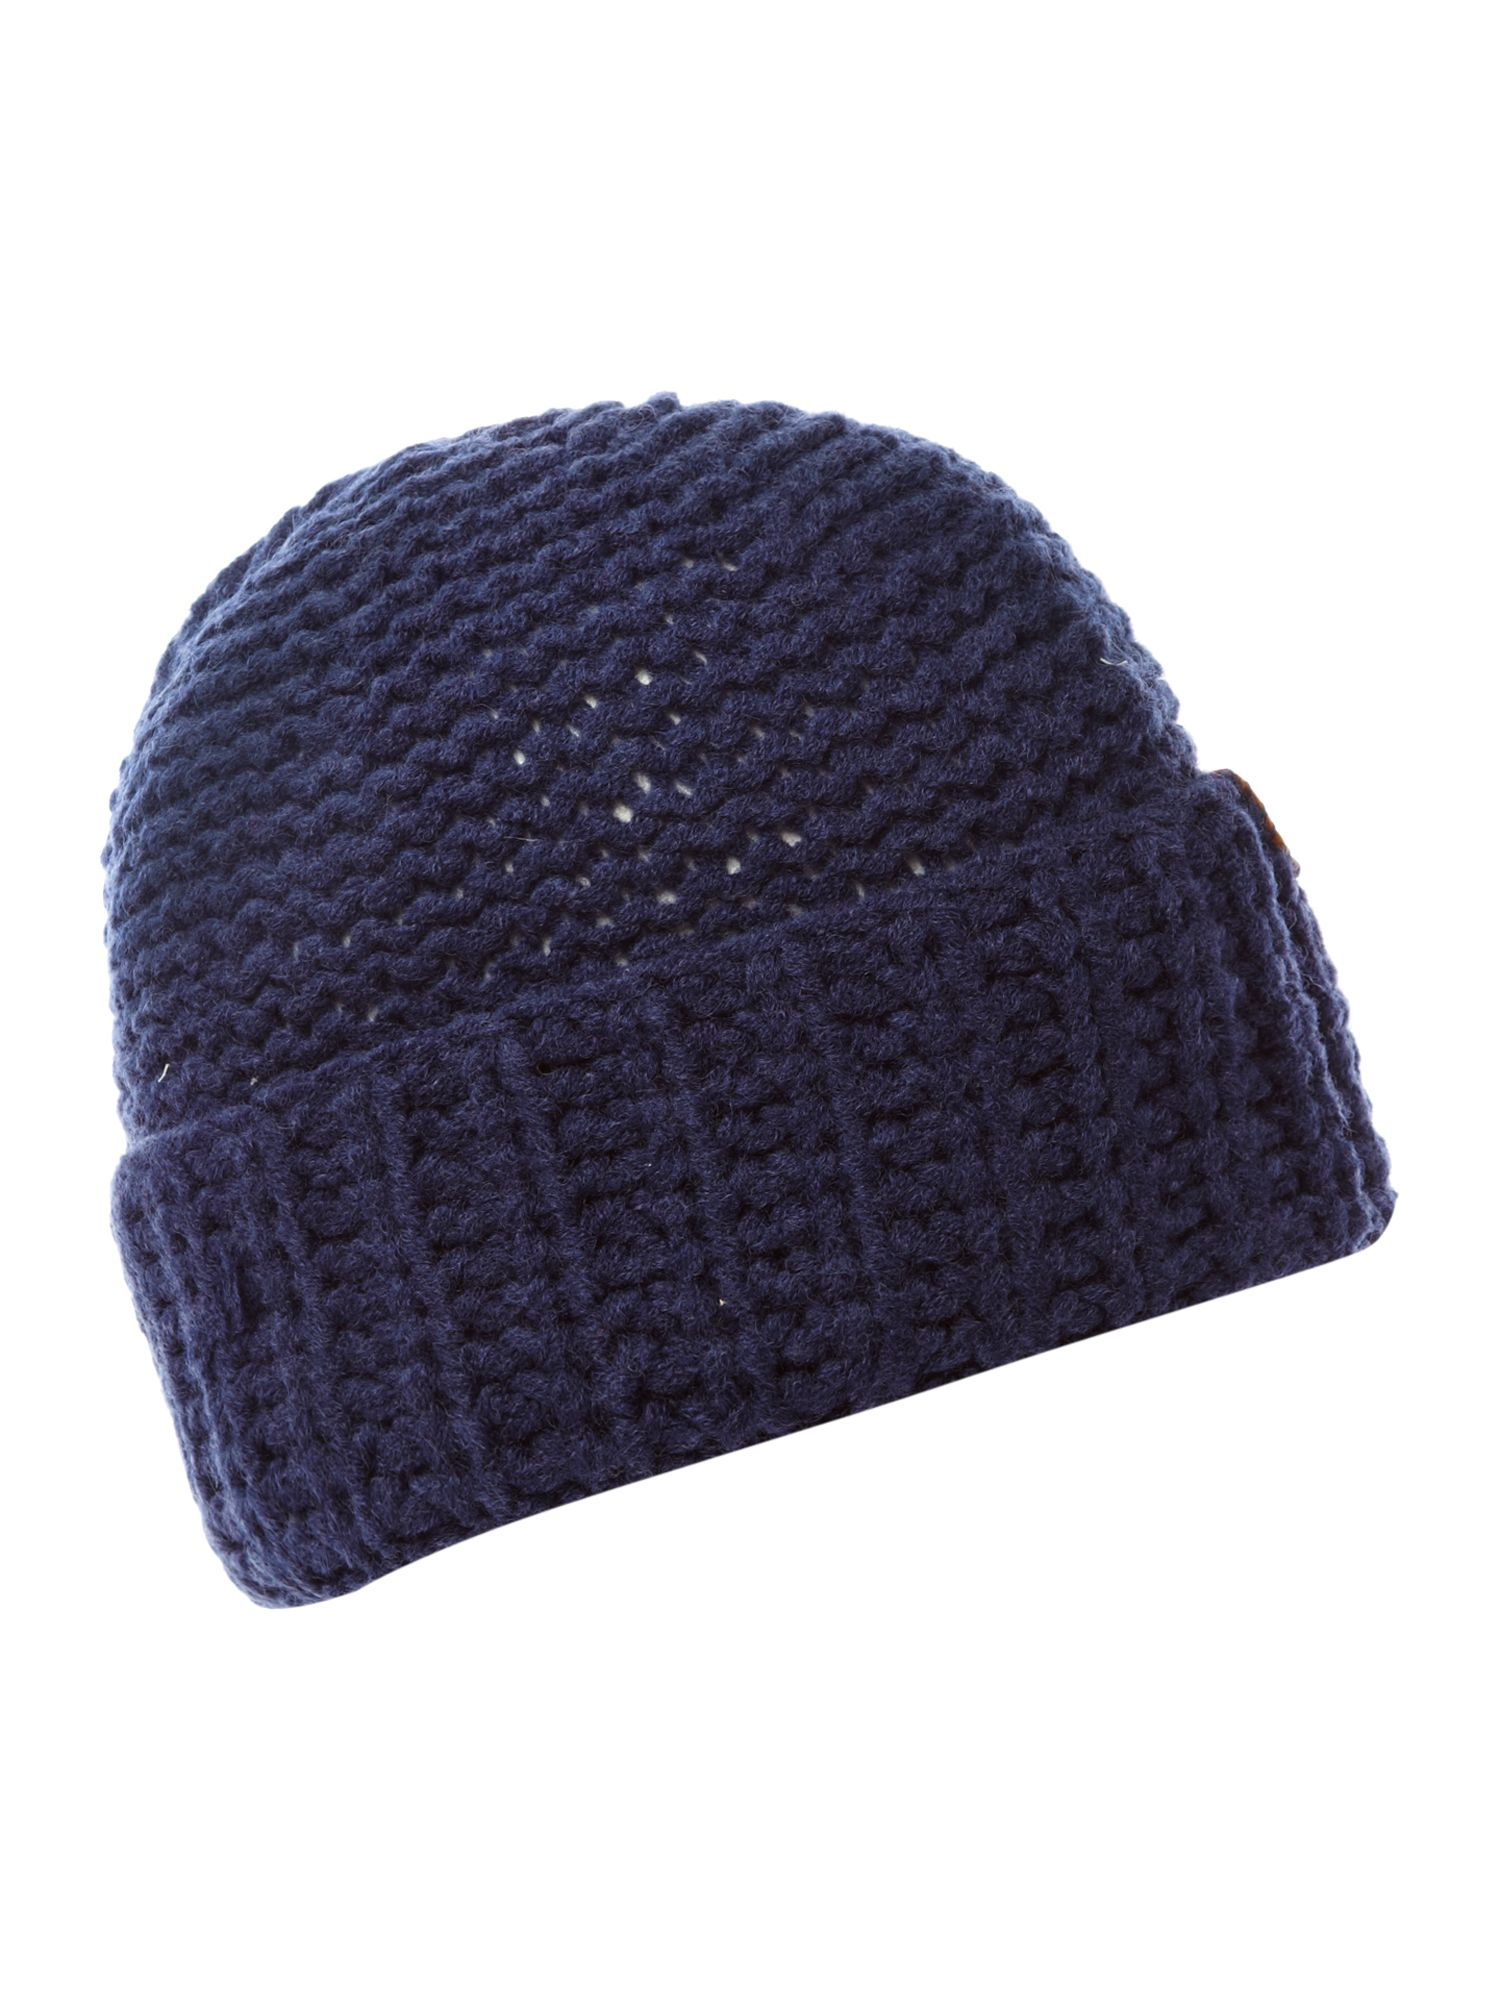 Knitting Chunky Hat : Diesel chunky knit beanie hat in blue for men navy lyst